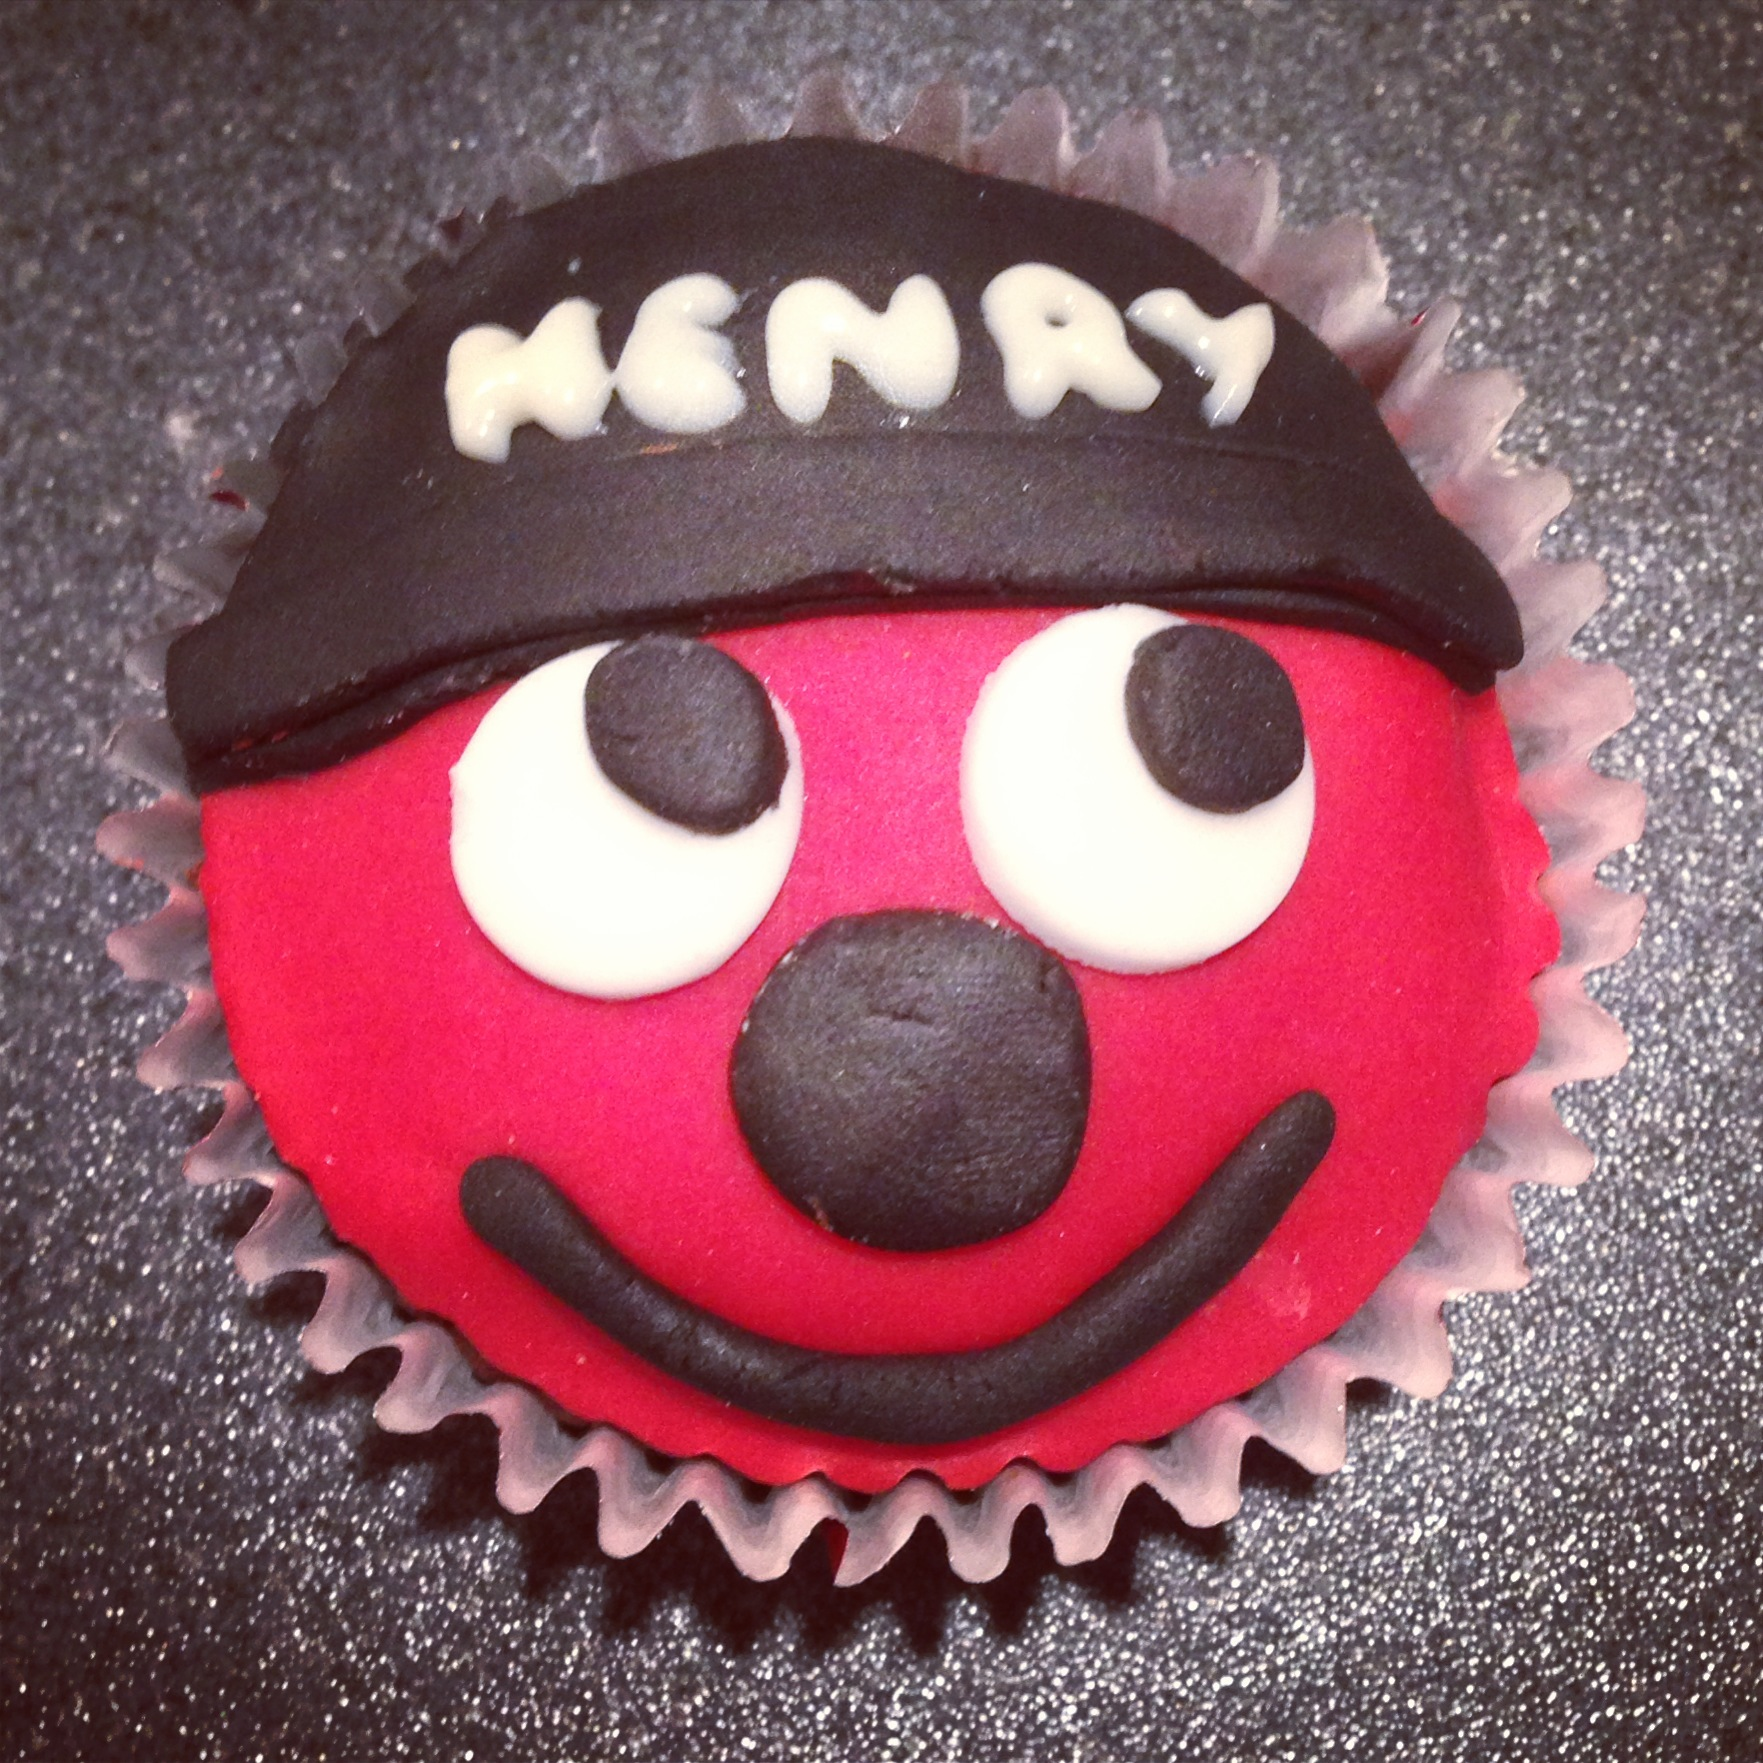 henry hoover cupcake bakers cakes bakers cakes